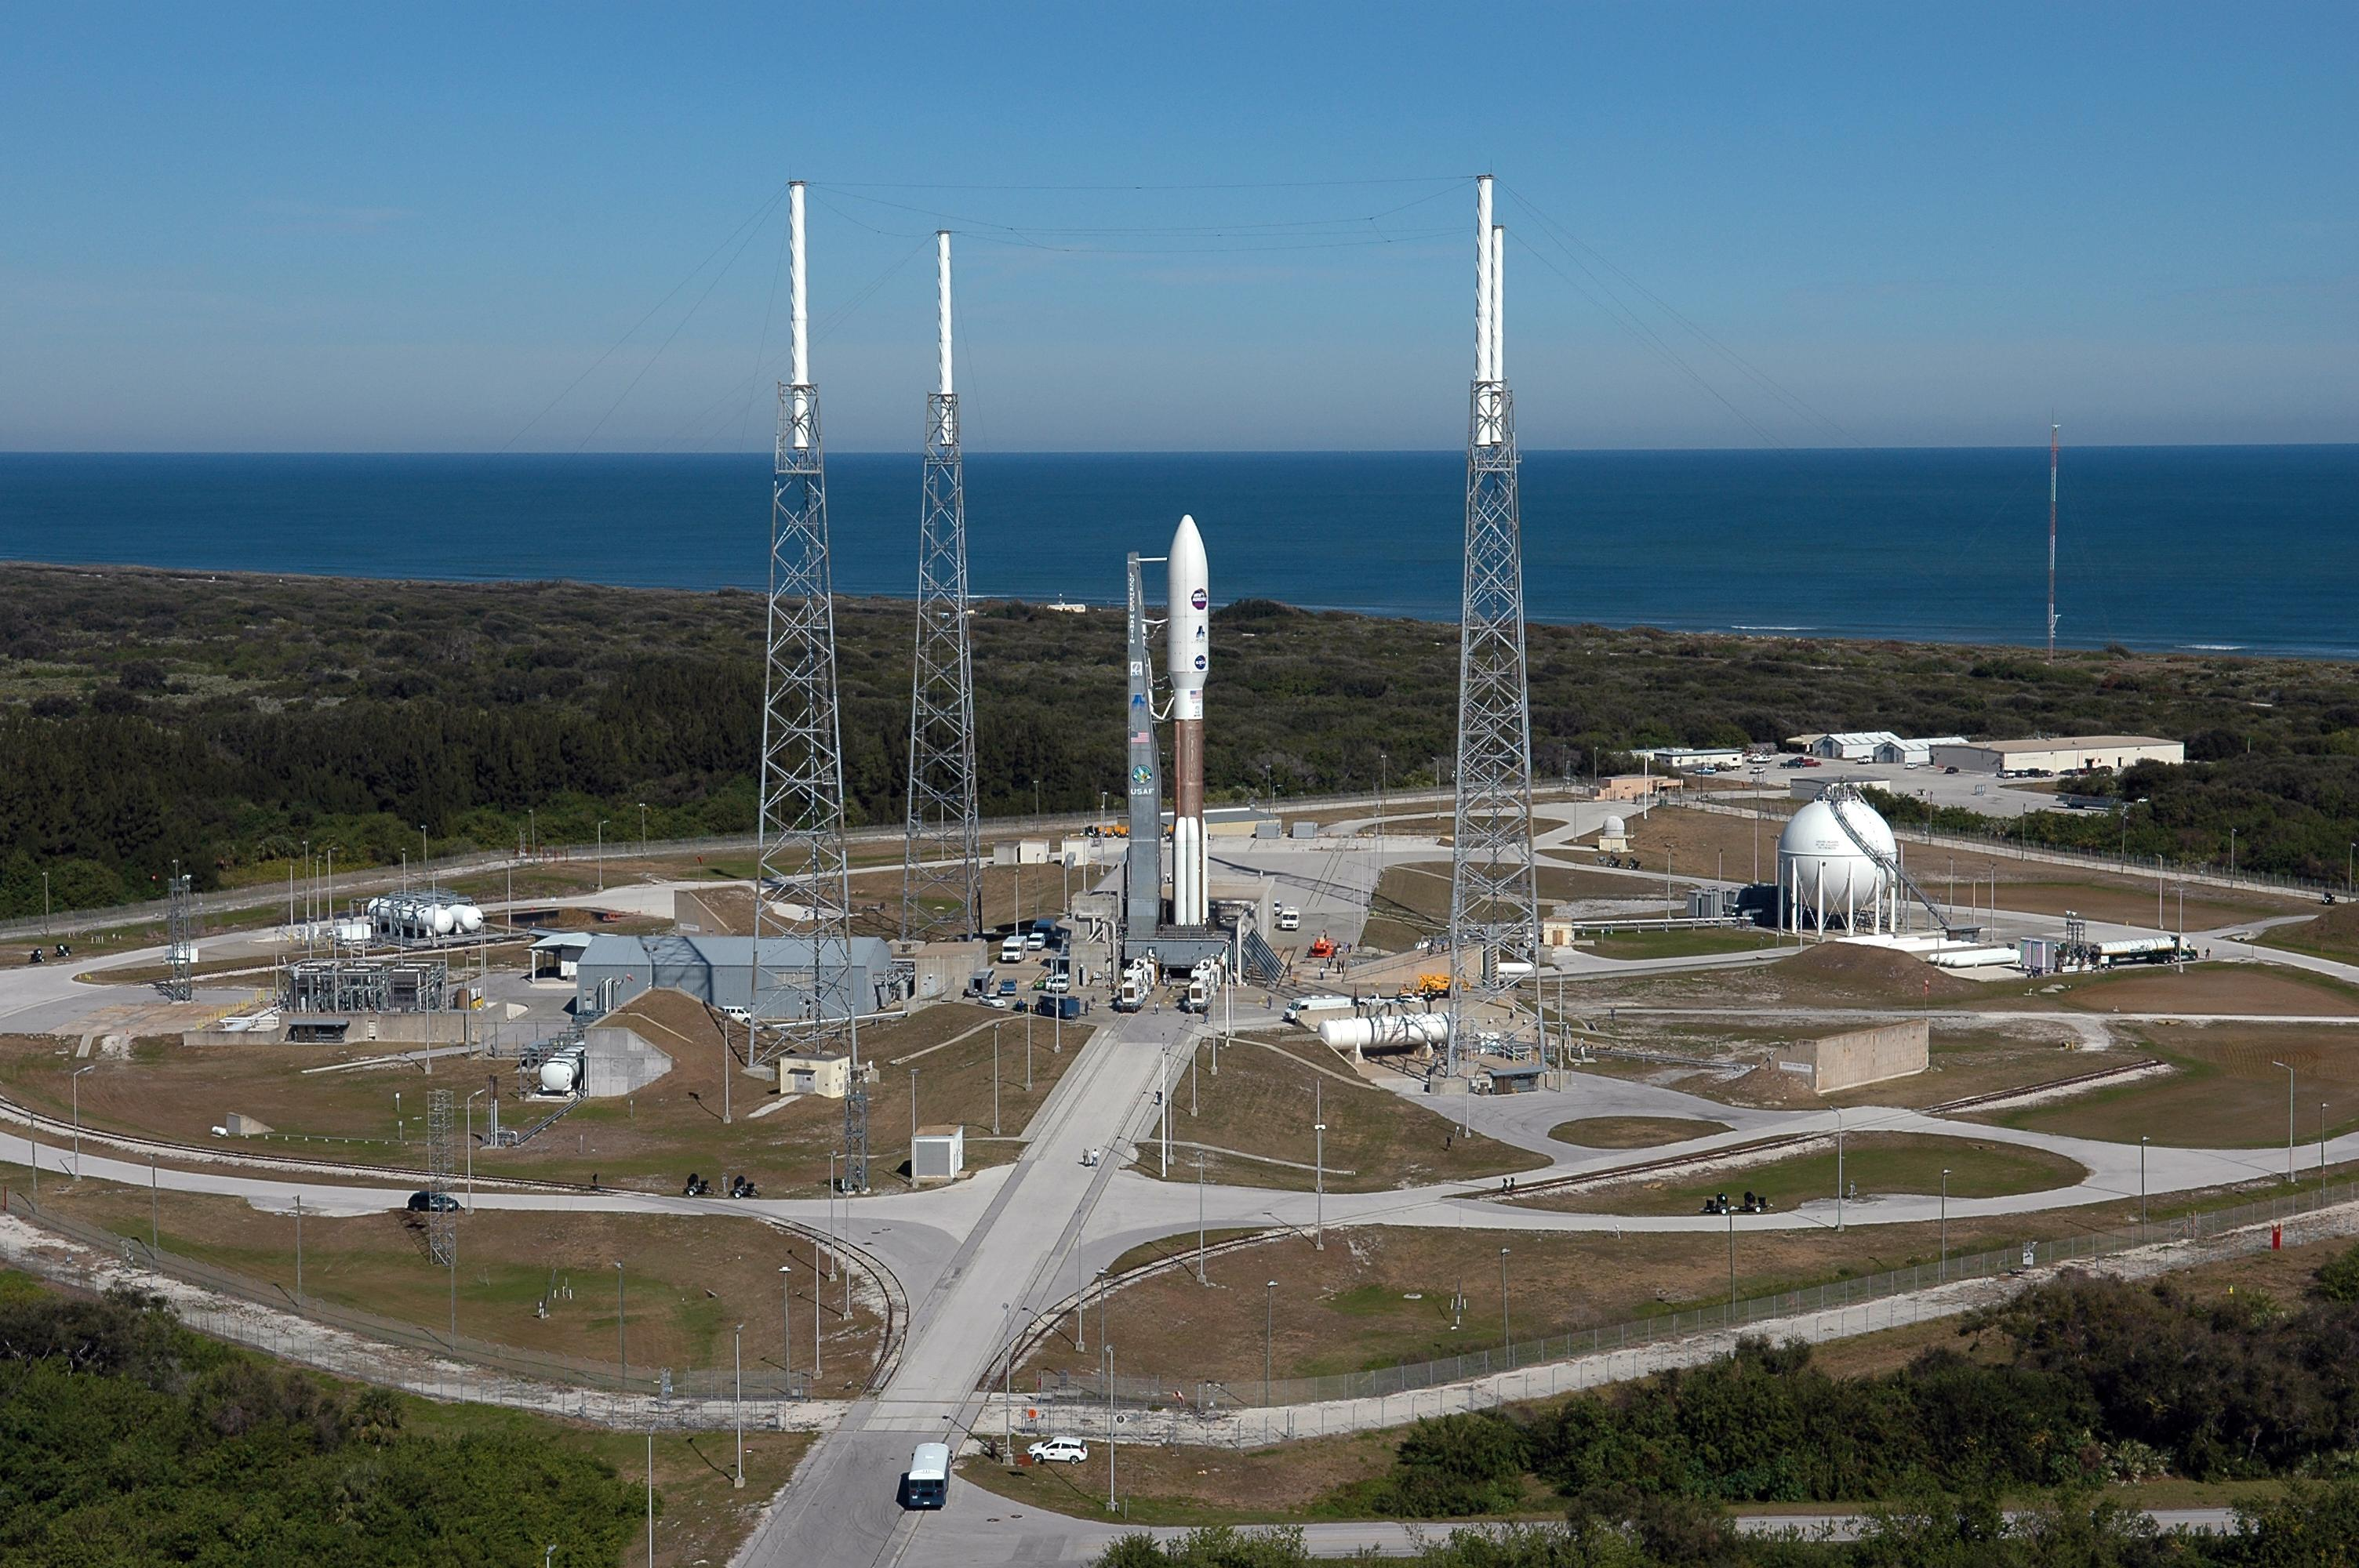 Cape Canaveral Air Force Station Space Launch Complex 40